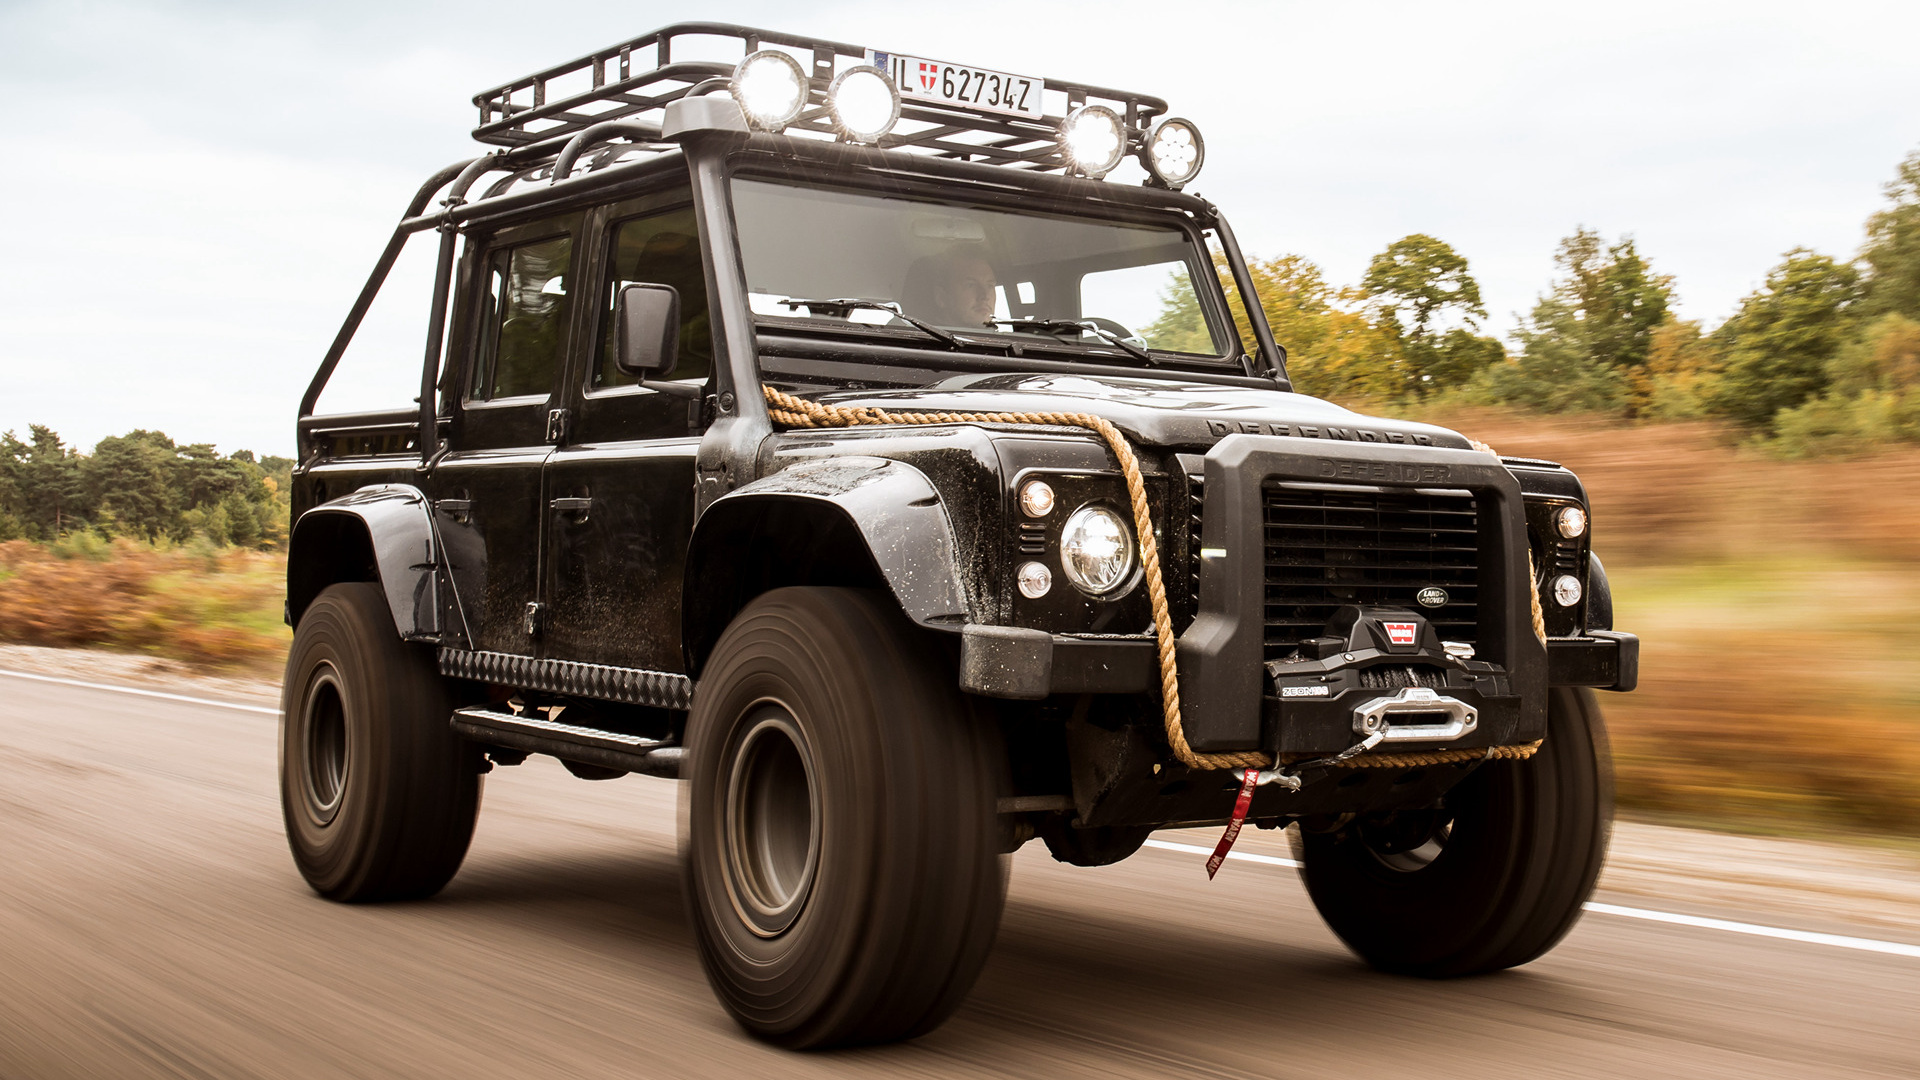 ... Rover Defender 007 Spectre (2015) Wallpapers and HD Images - Car Pixel